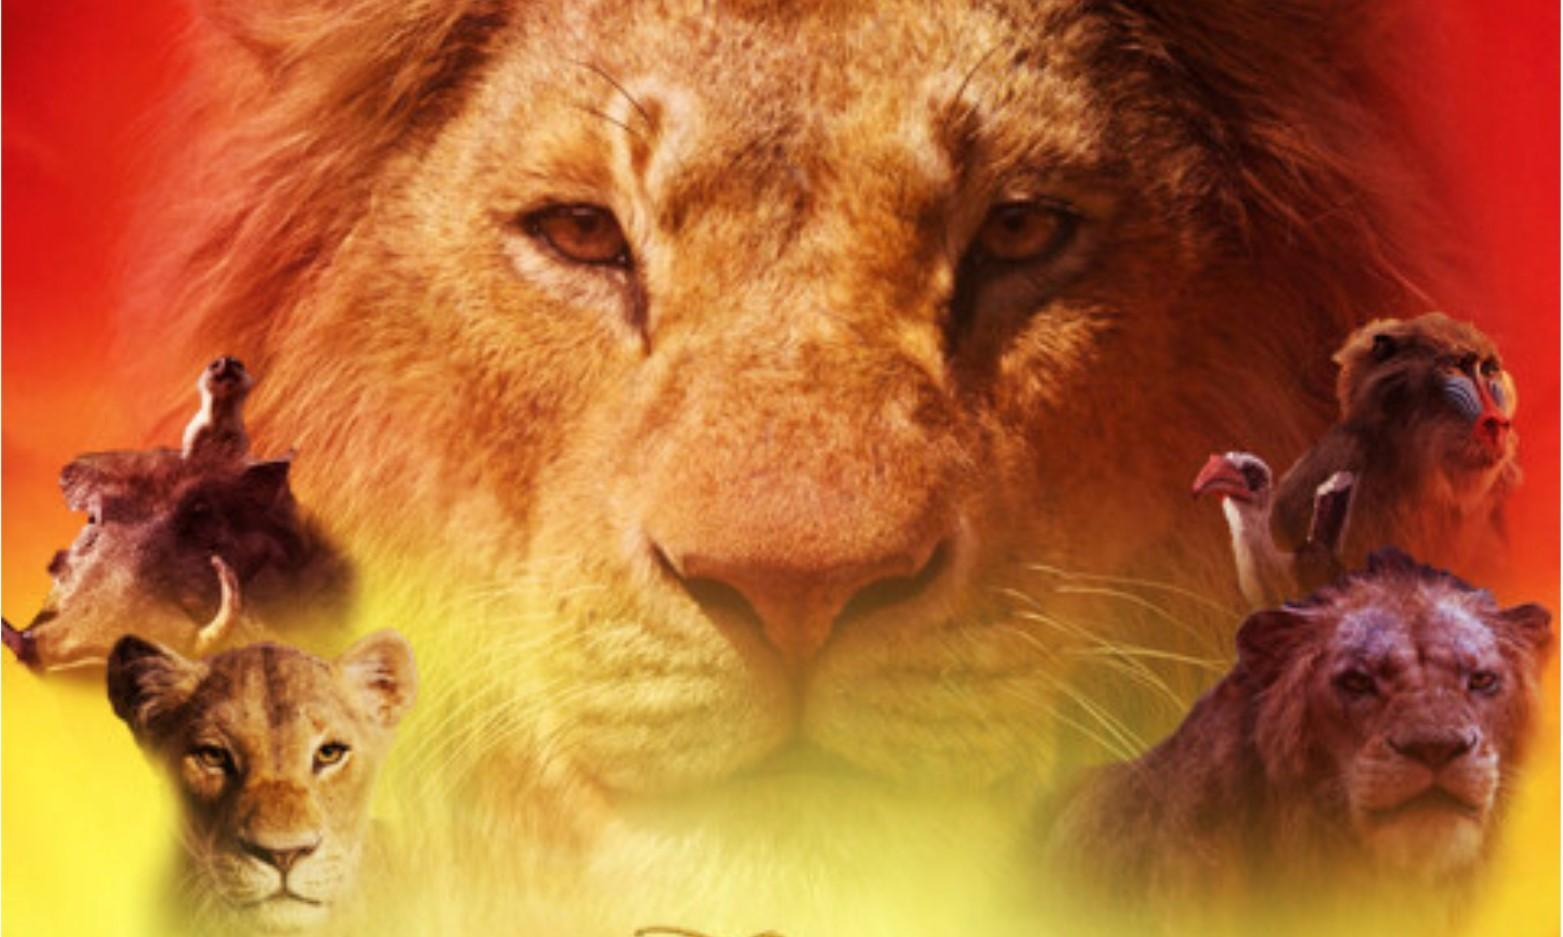 Half Term Movie The Lion King at Swansea Waterfront Museum